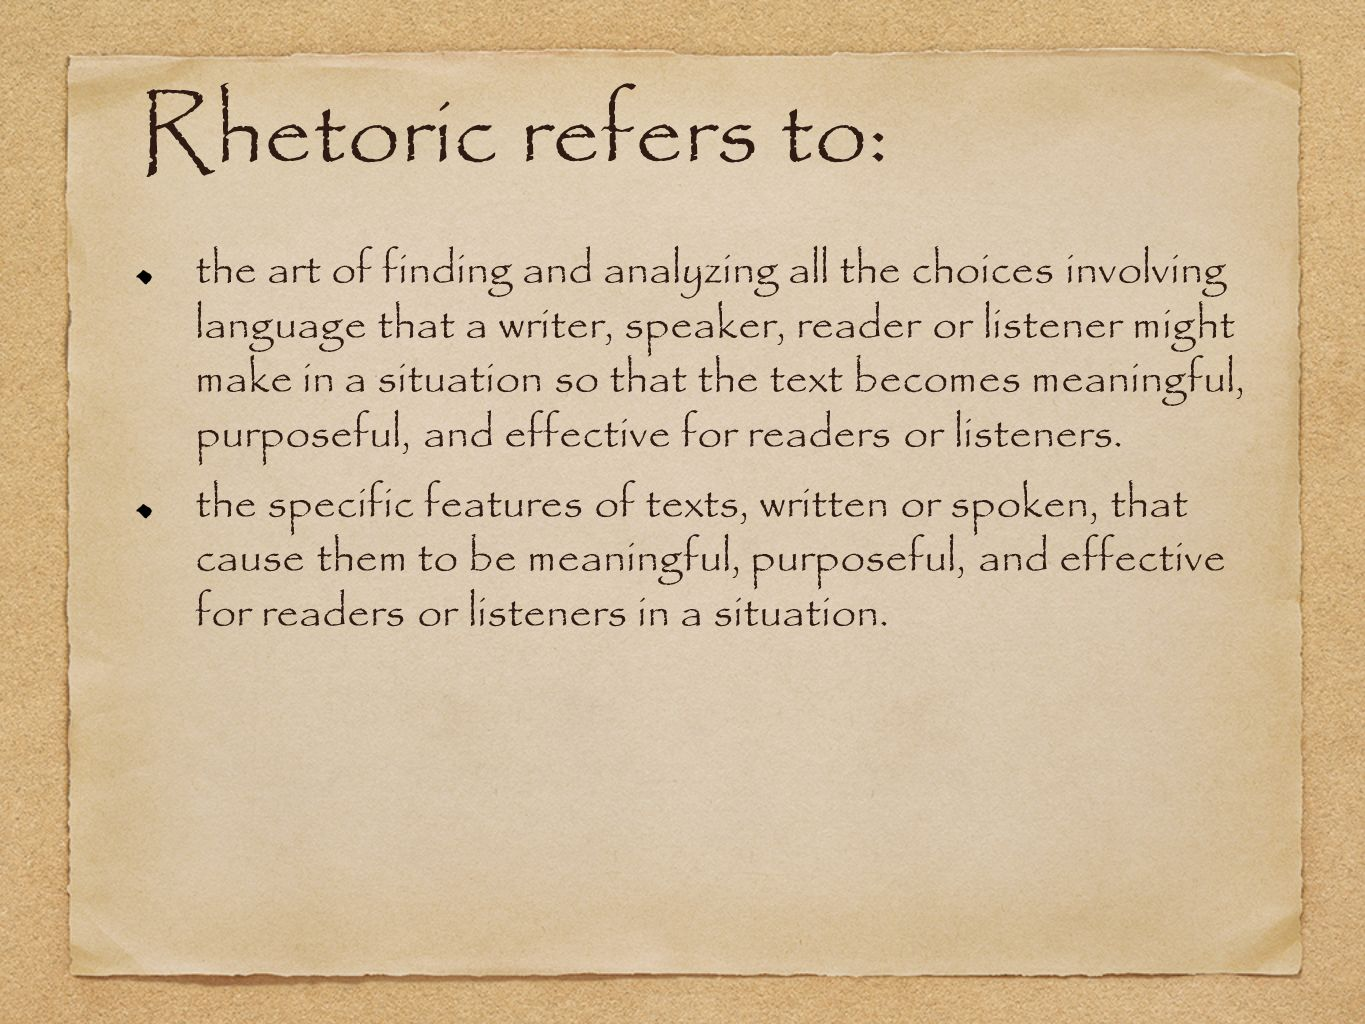 Rhetoric refers to: the art of finding and analyzing all the choices involving language that a writer, speaker, reader or listener might make in a situation so that the text becomes meaningful, purposeful, and effective for readers or listeners.